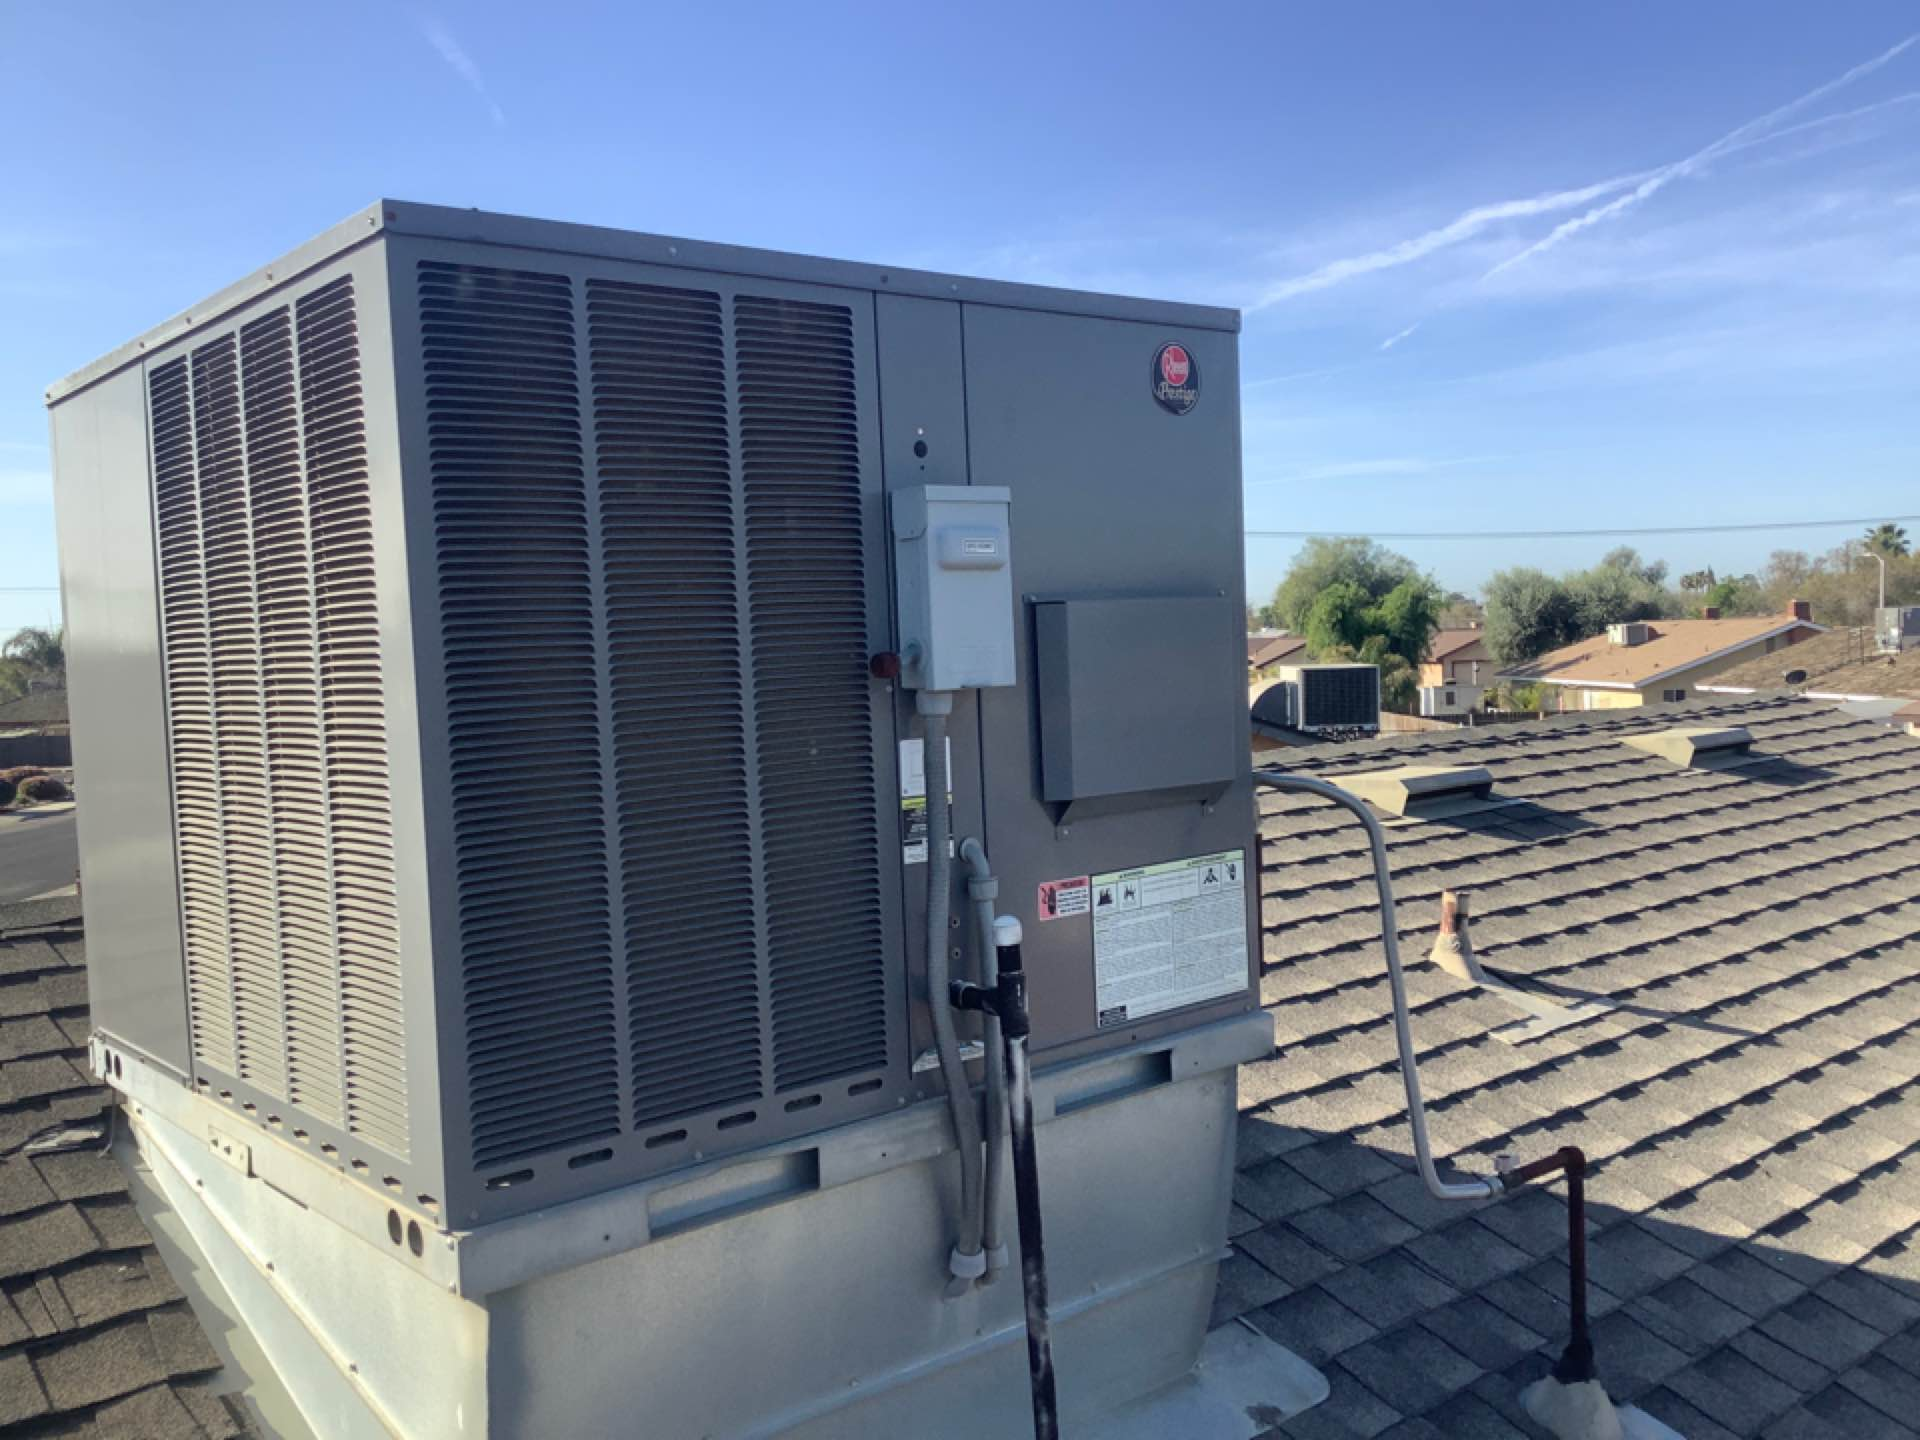 Hanford, CA - Preparing for a hot summer. Getting this Rheem prestige cleaned up and go to go.